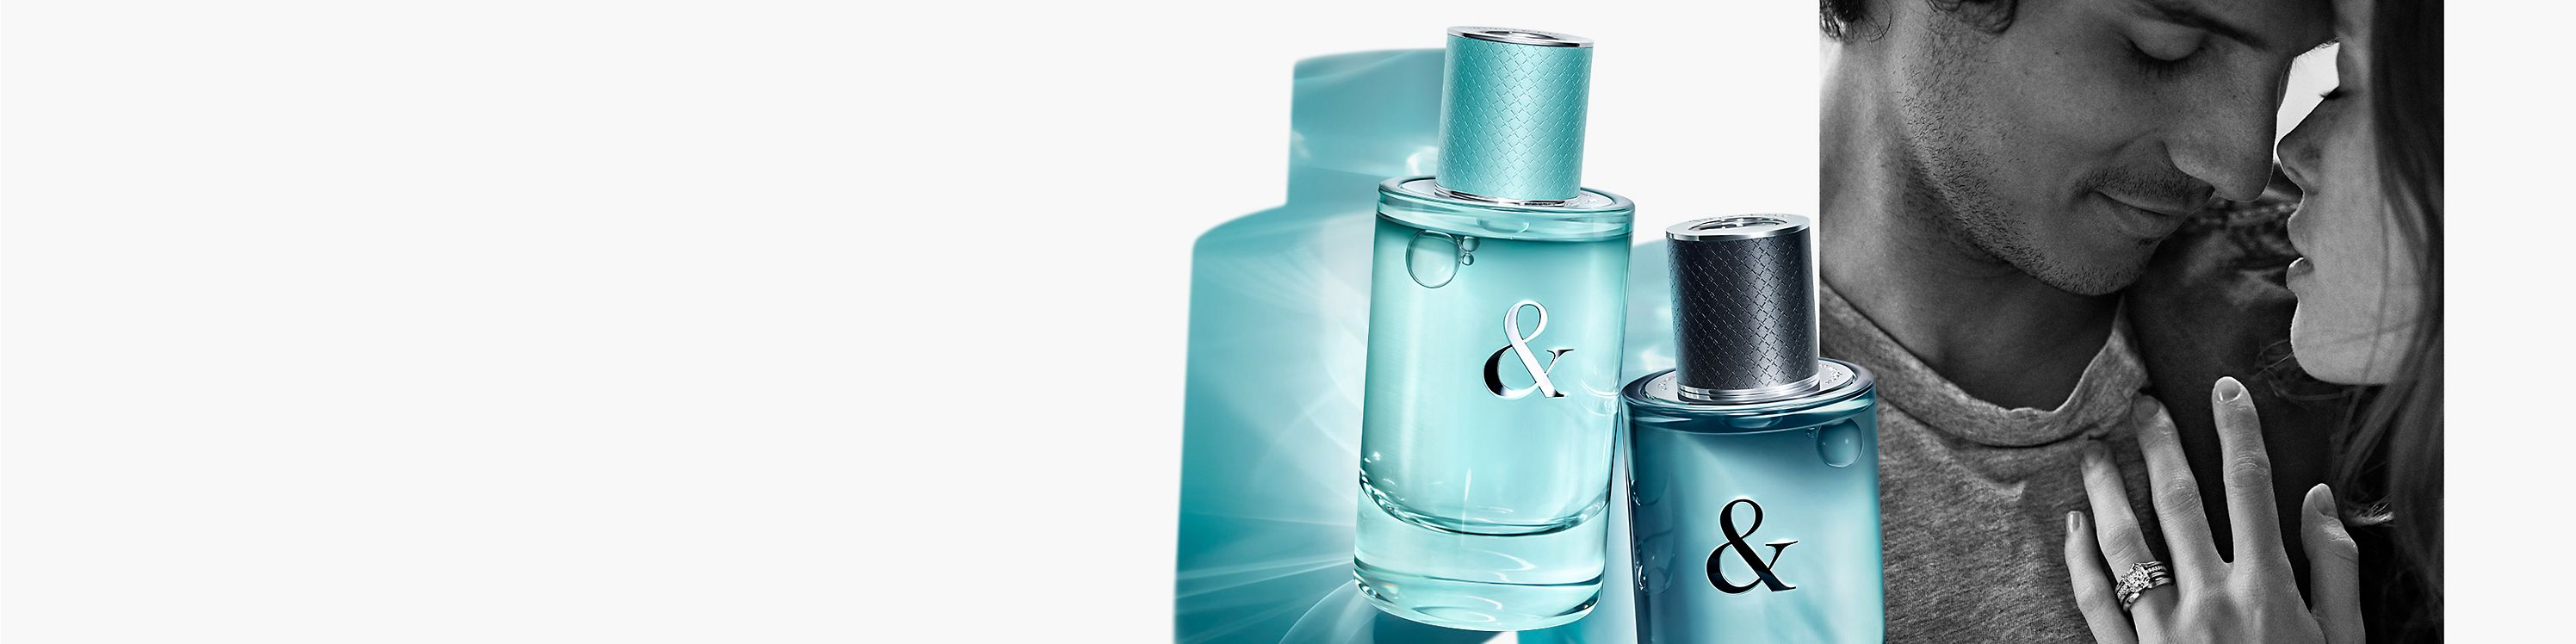 Parcourir les parfums Tiffany & Co.